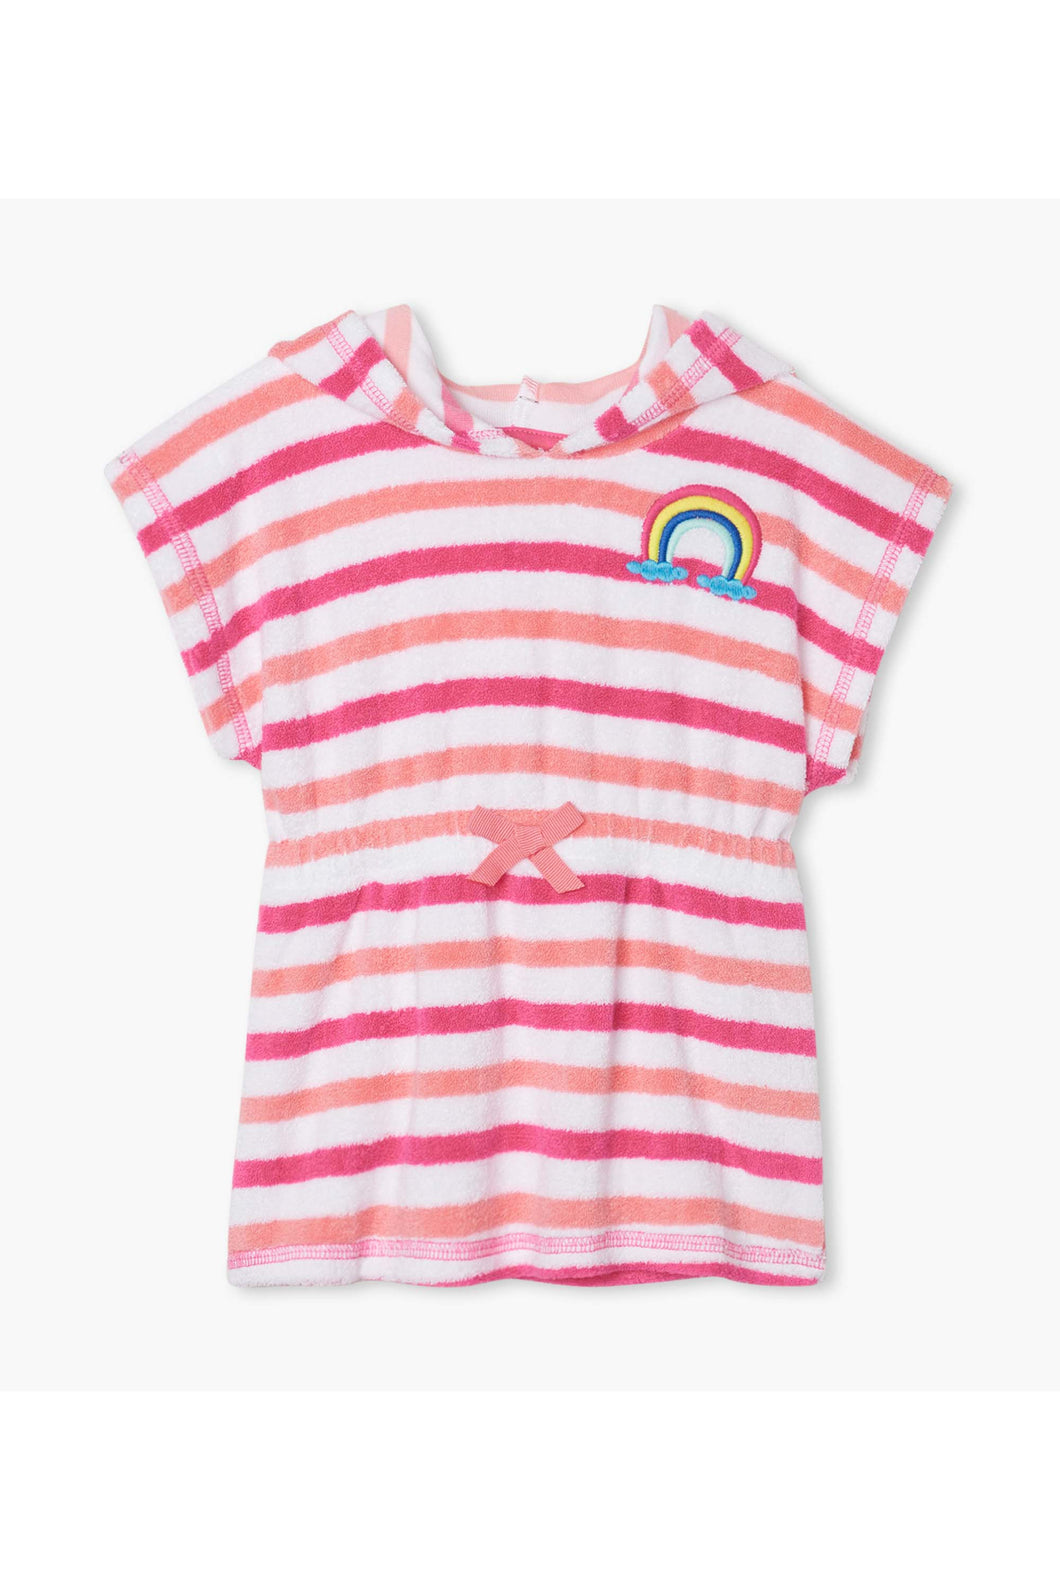 CAP SLEEVE BABY RAINBOW DETAIL TERRY COVER-UP